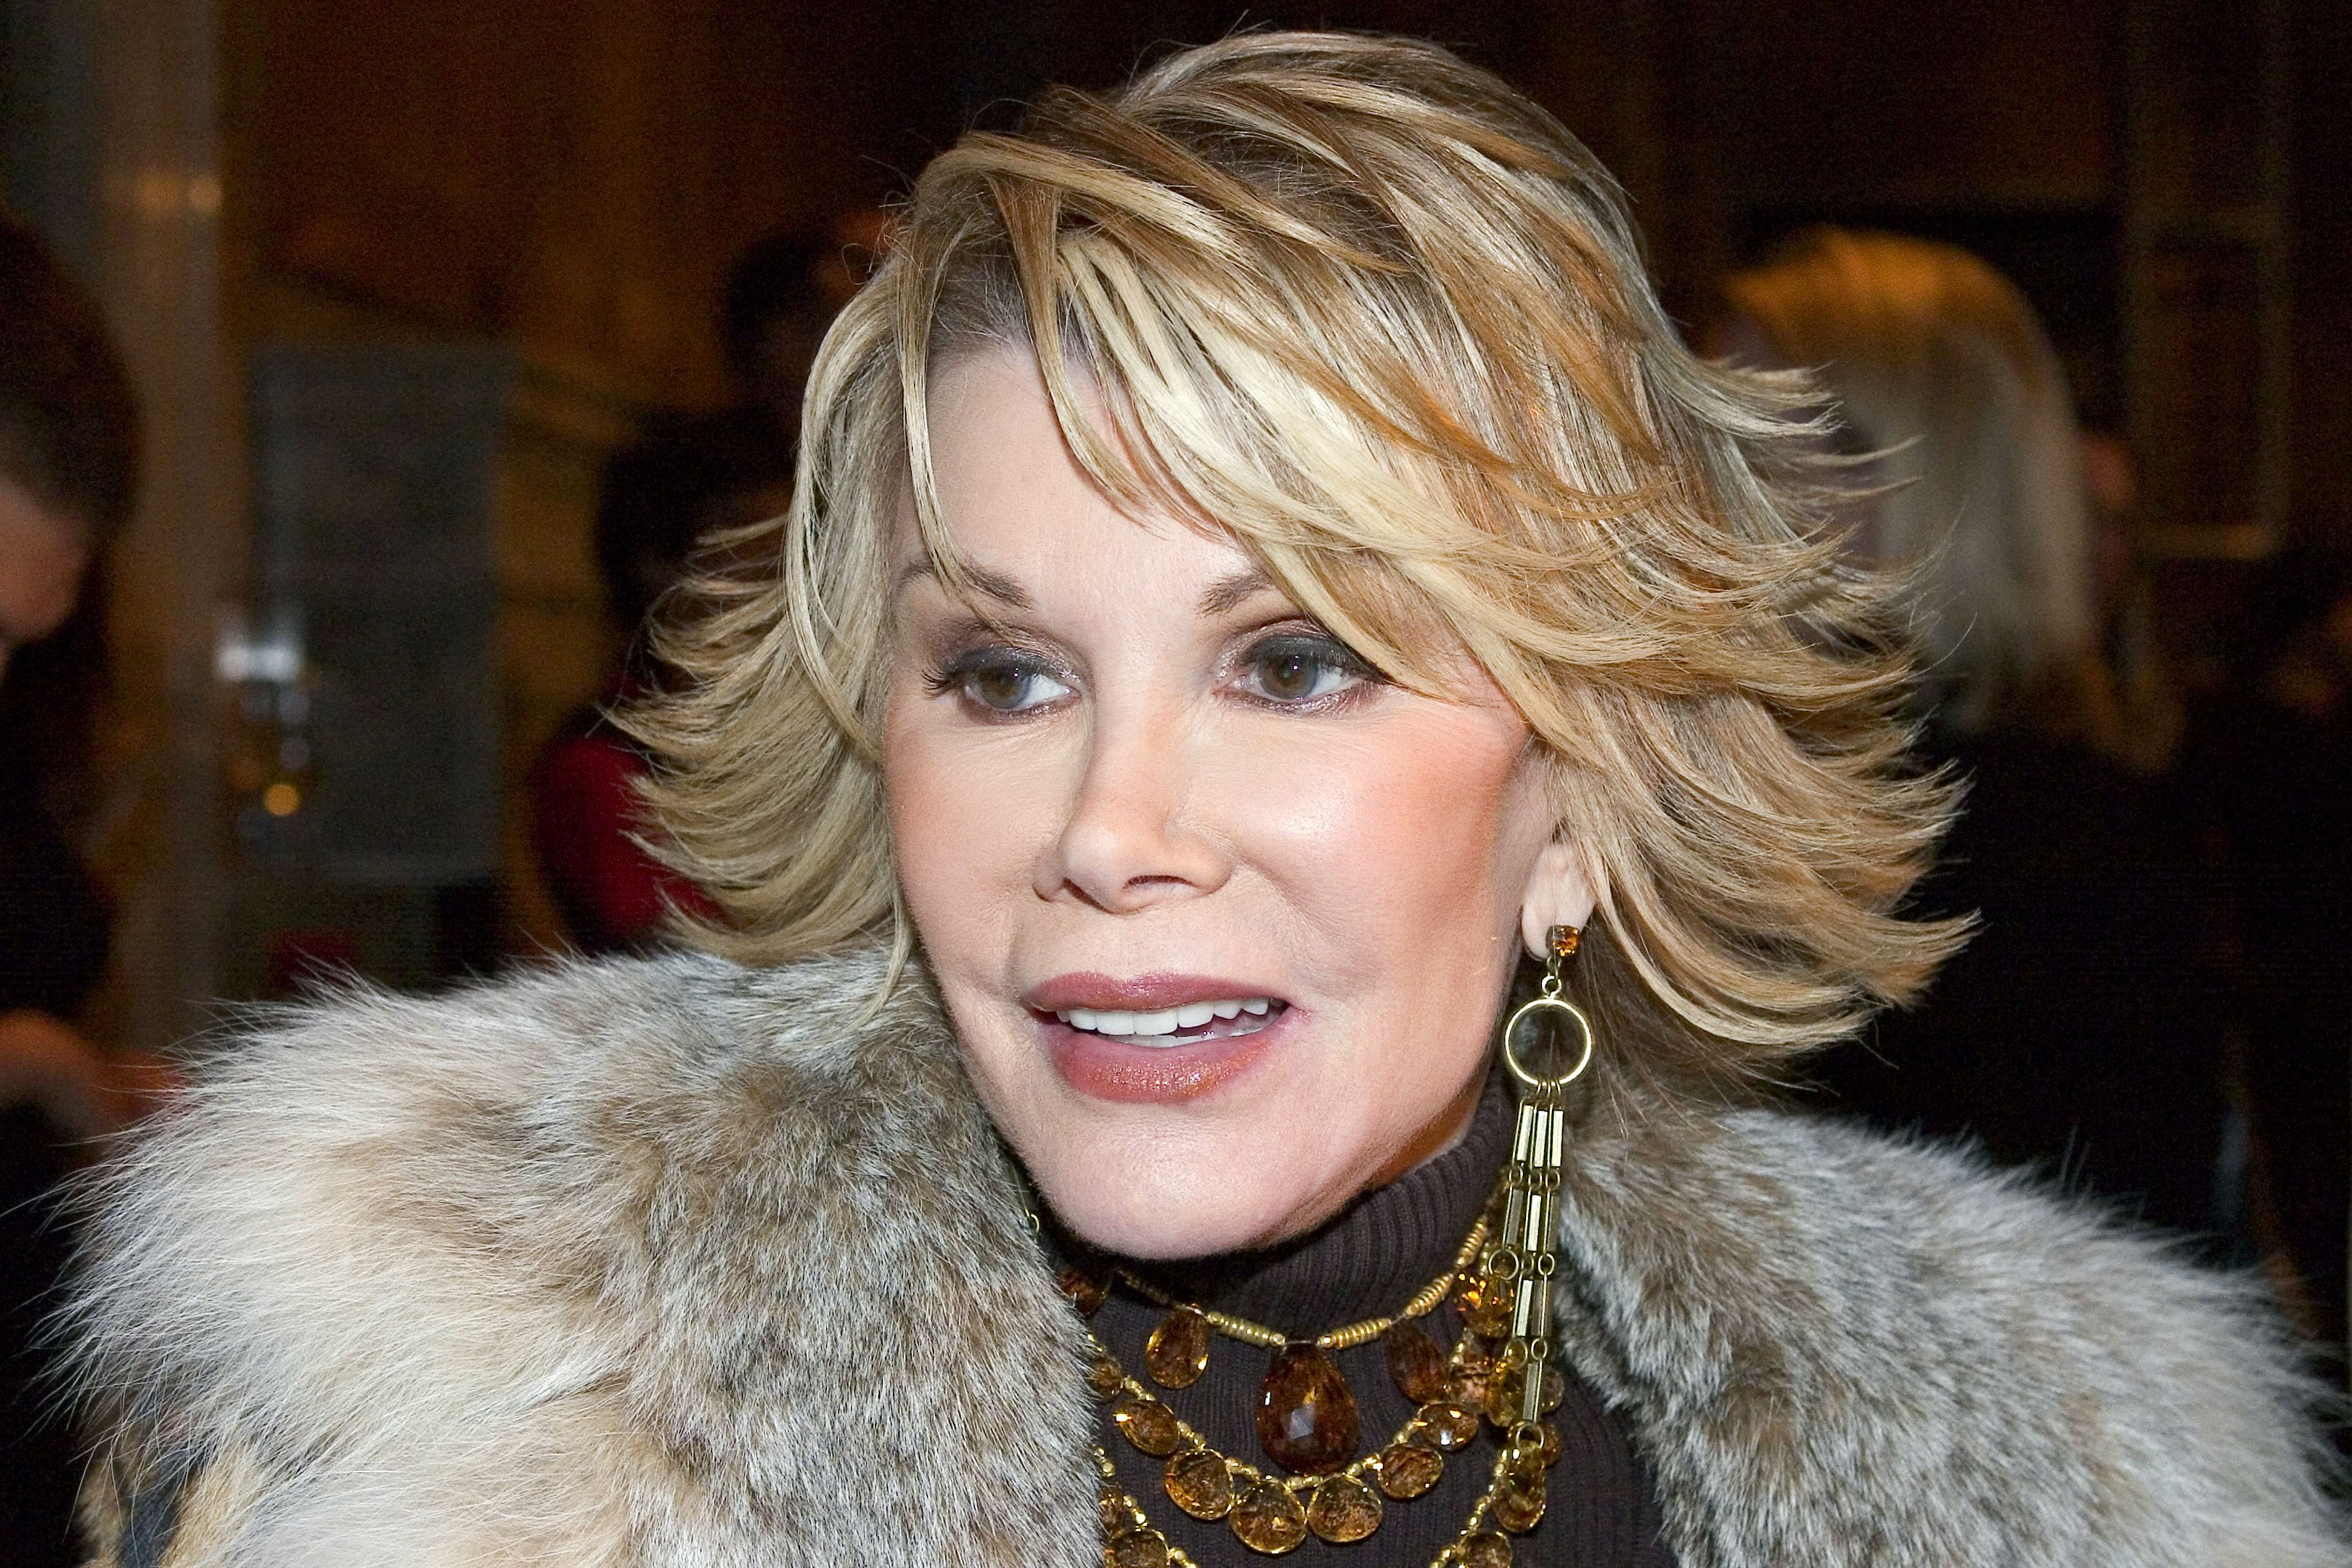 Joan Rivers attends the Banana Republic 2005 Spring Collection in New York City on October 25, 2004 | Photo: Getty Images